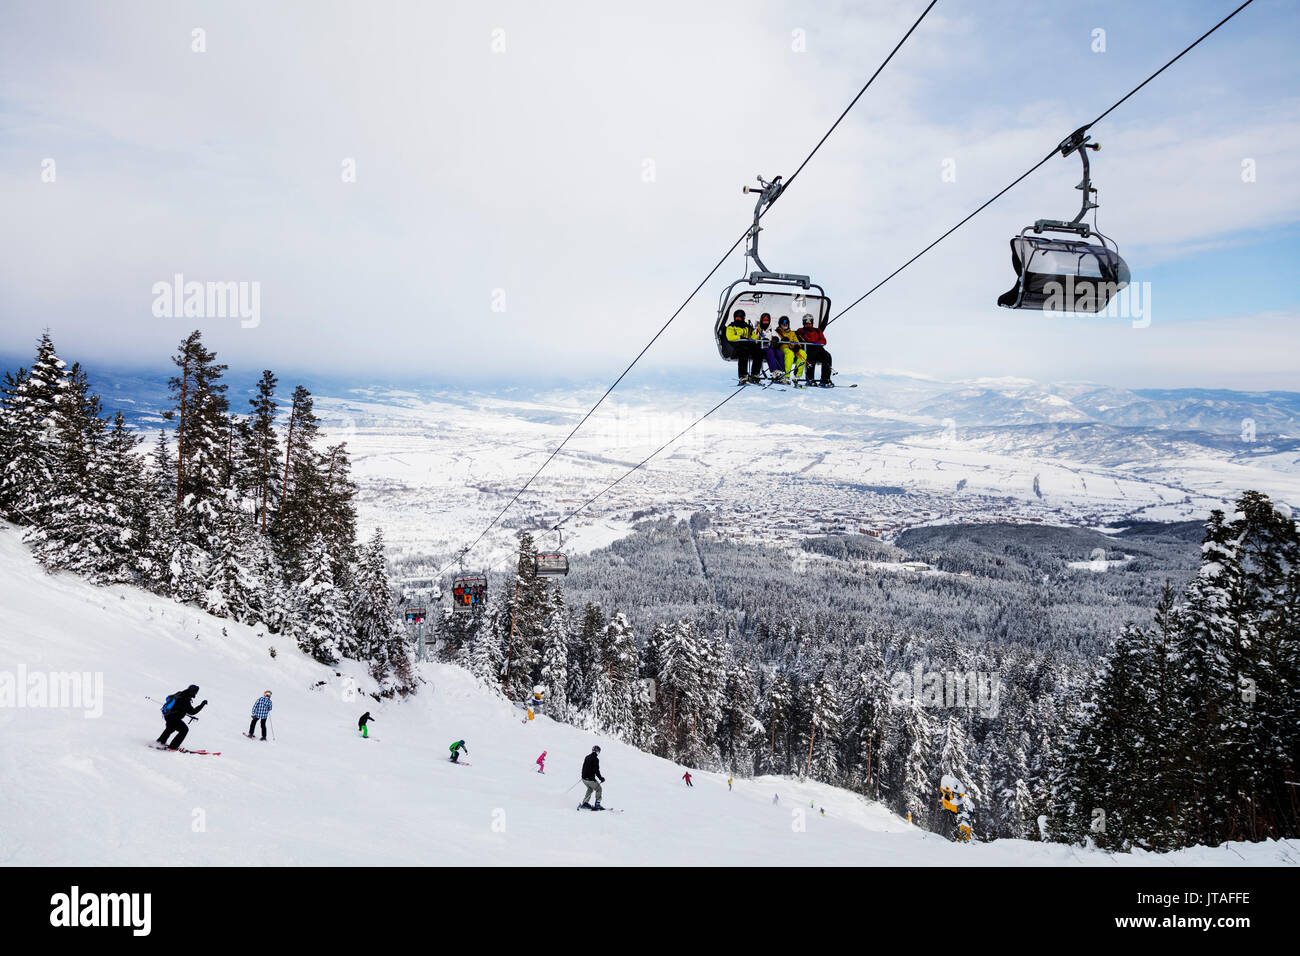 Piste skiers, Bansko resort, Bulgaria, Europe - Stock Image